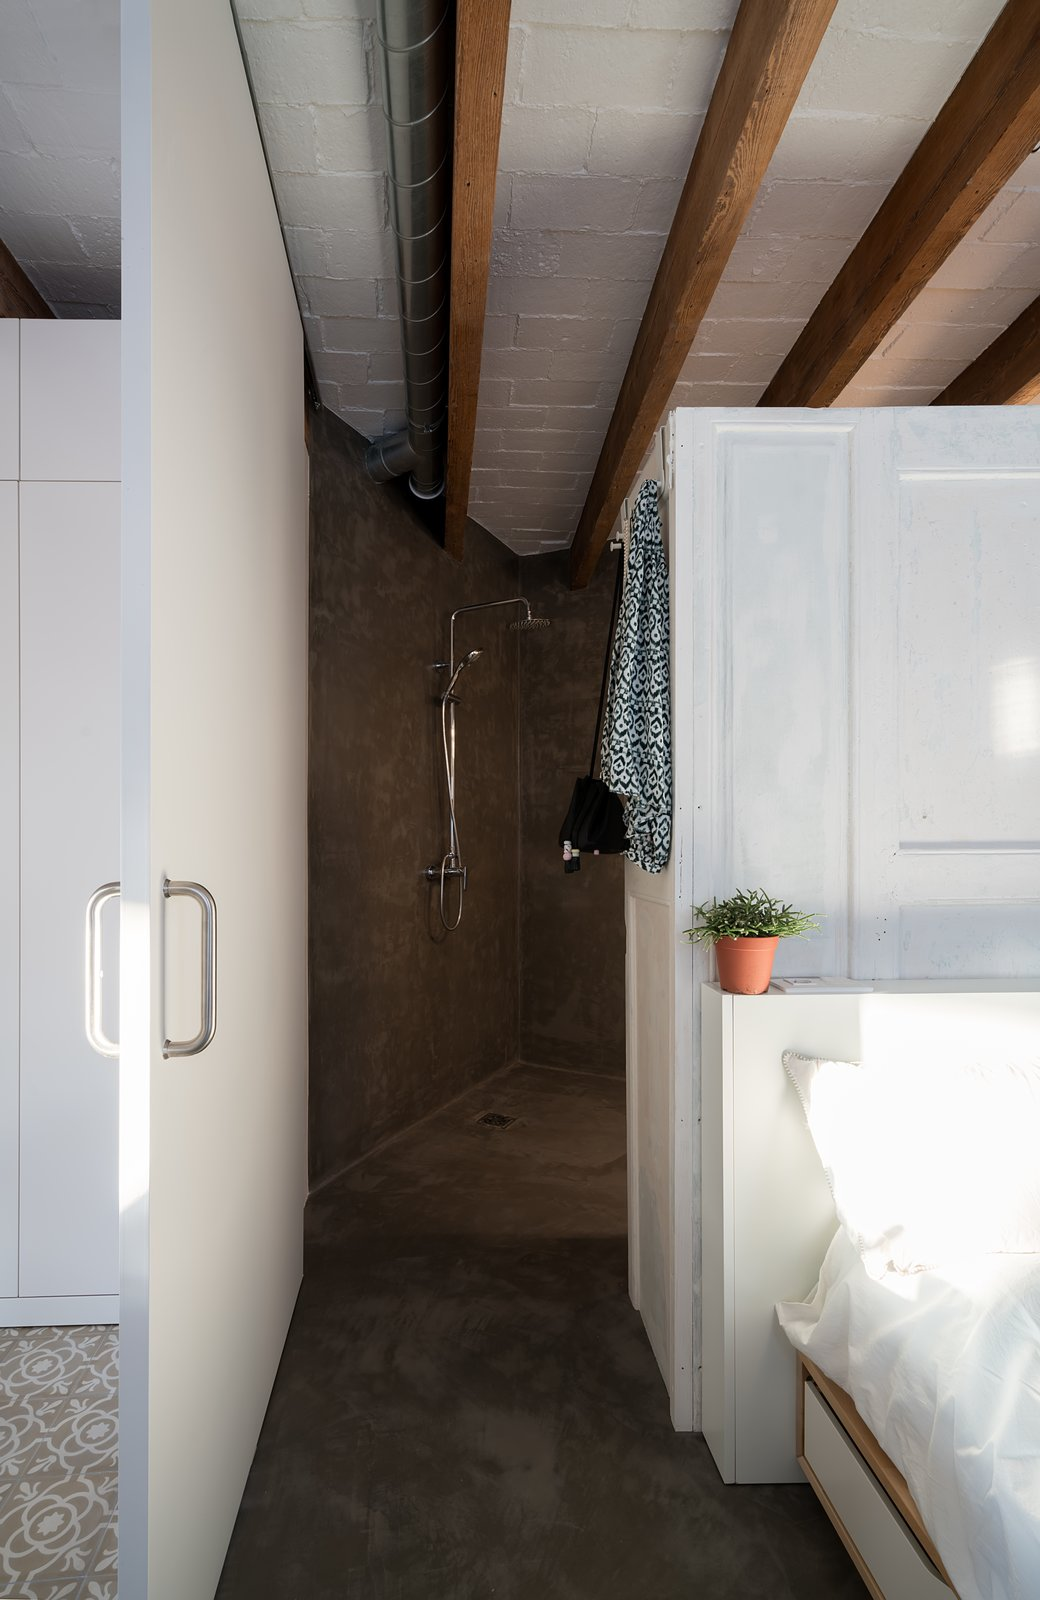 Bathroom  Old Town Refurbishment by Habitan Architects